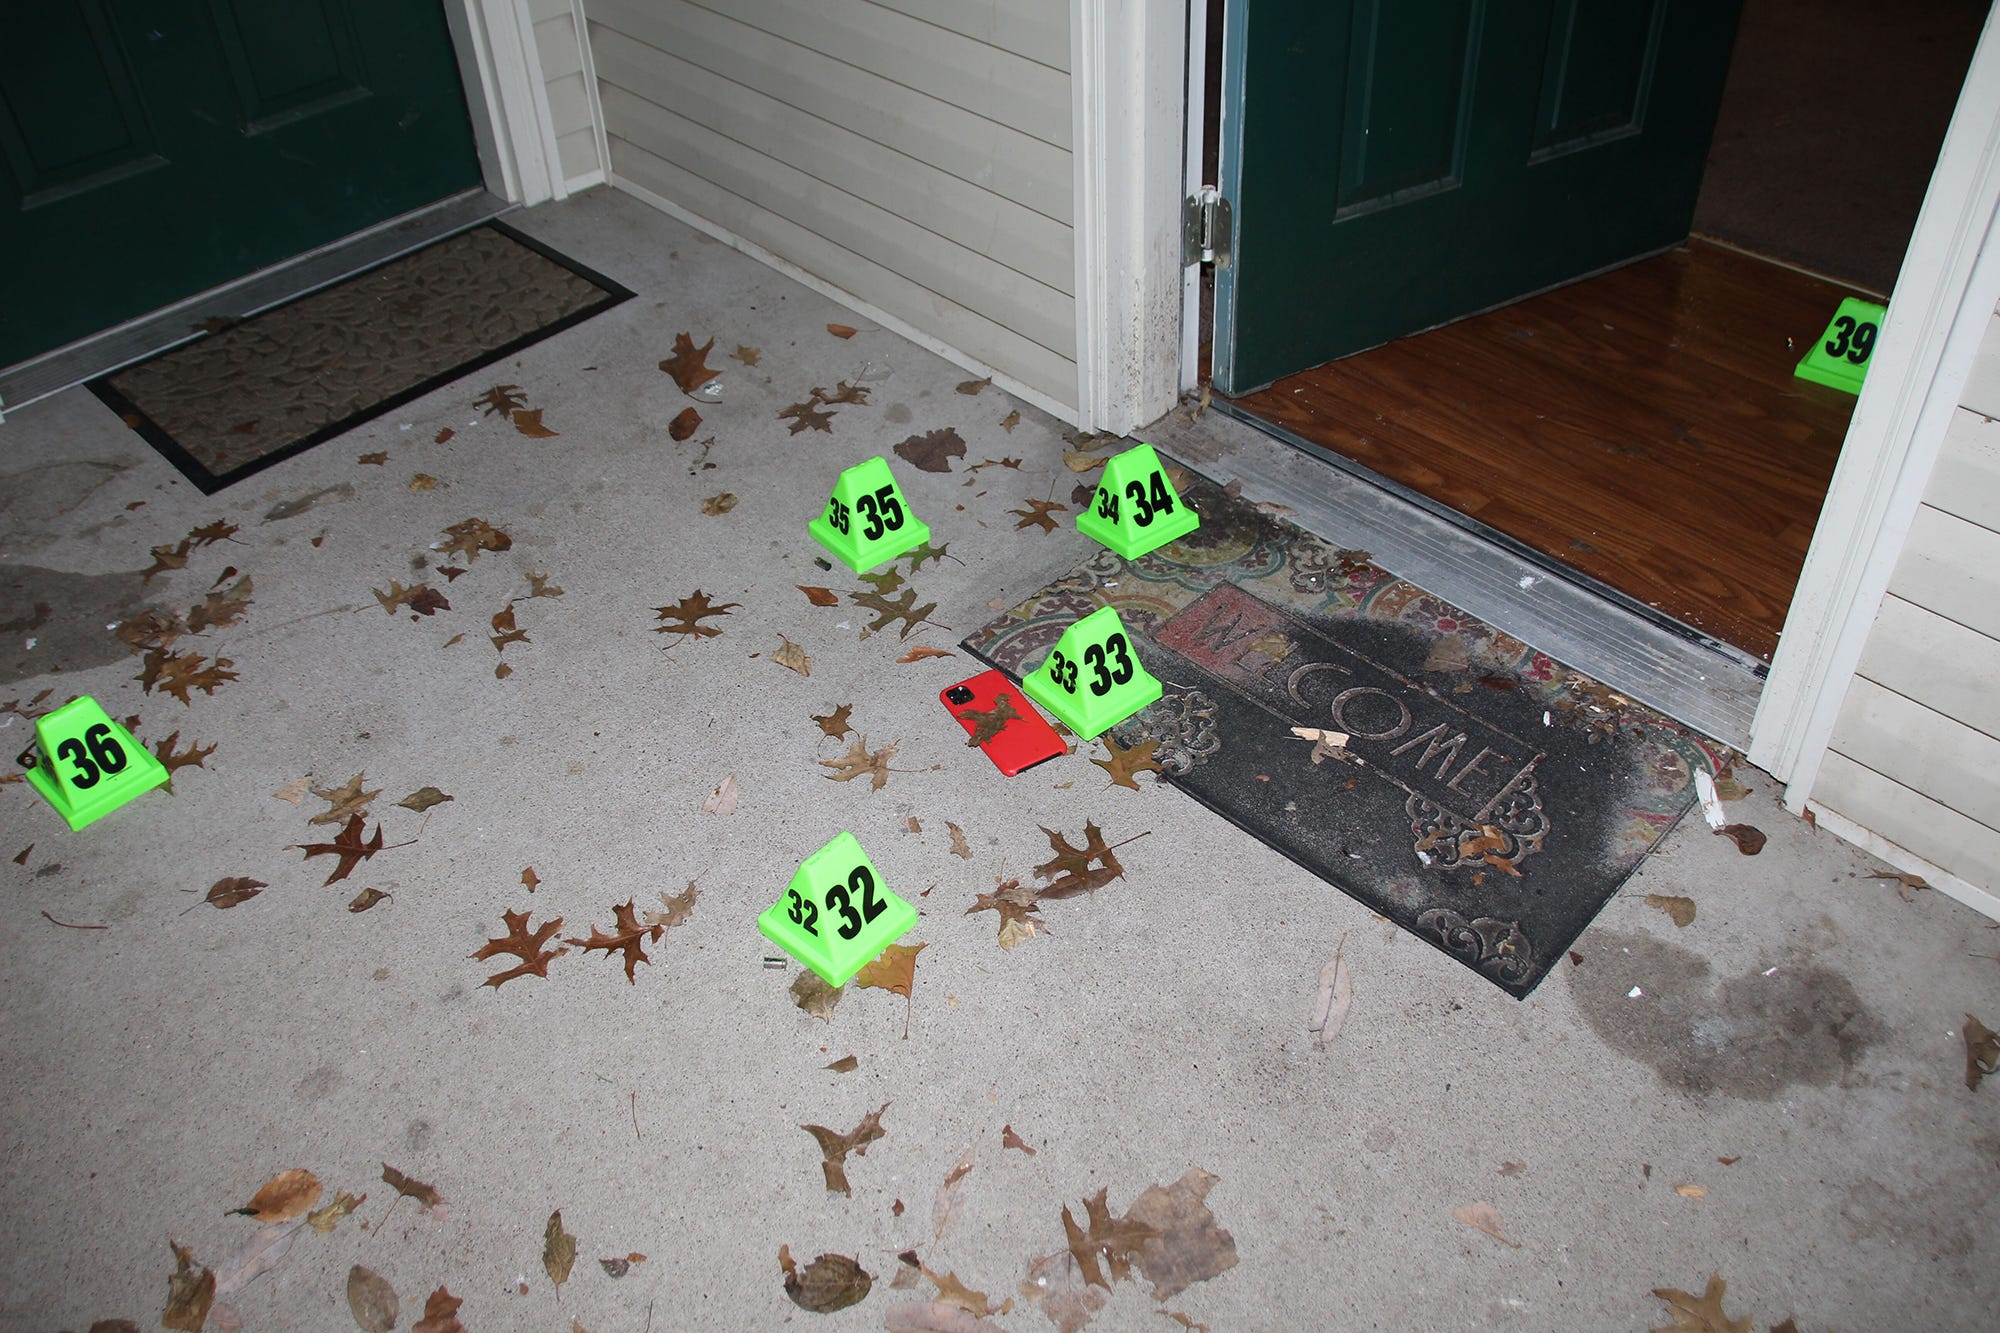 Louisville police crime scene photos from the Breonna Taylor shooting.